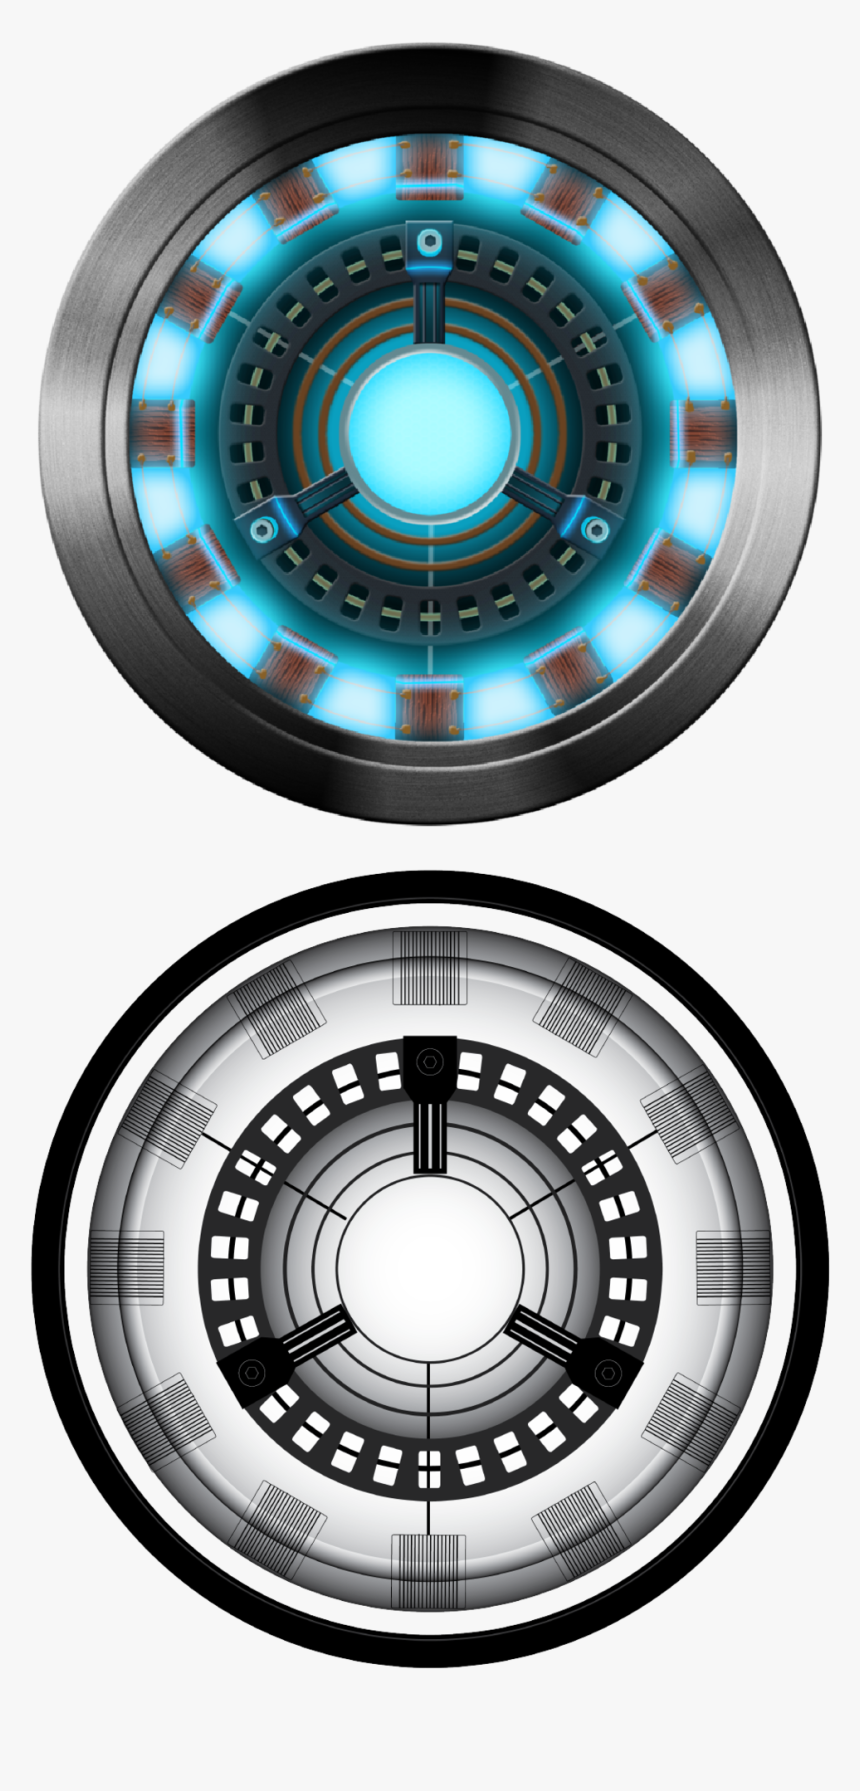 Iron Man Arc Reactor Image-01 - Proof That Ironman Has A Heart, HD Png Download, Free Download